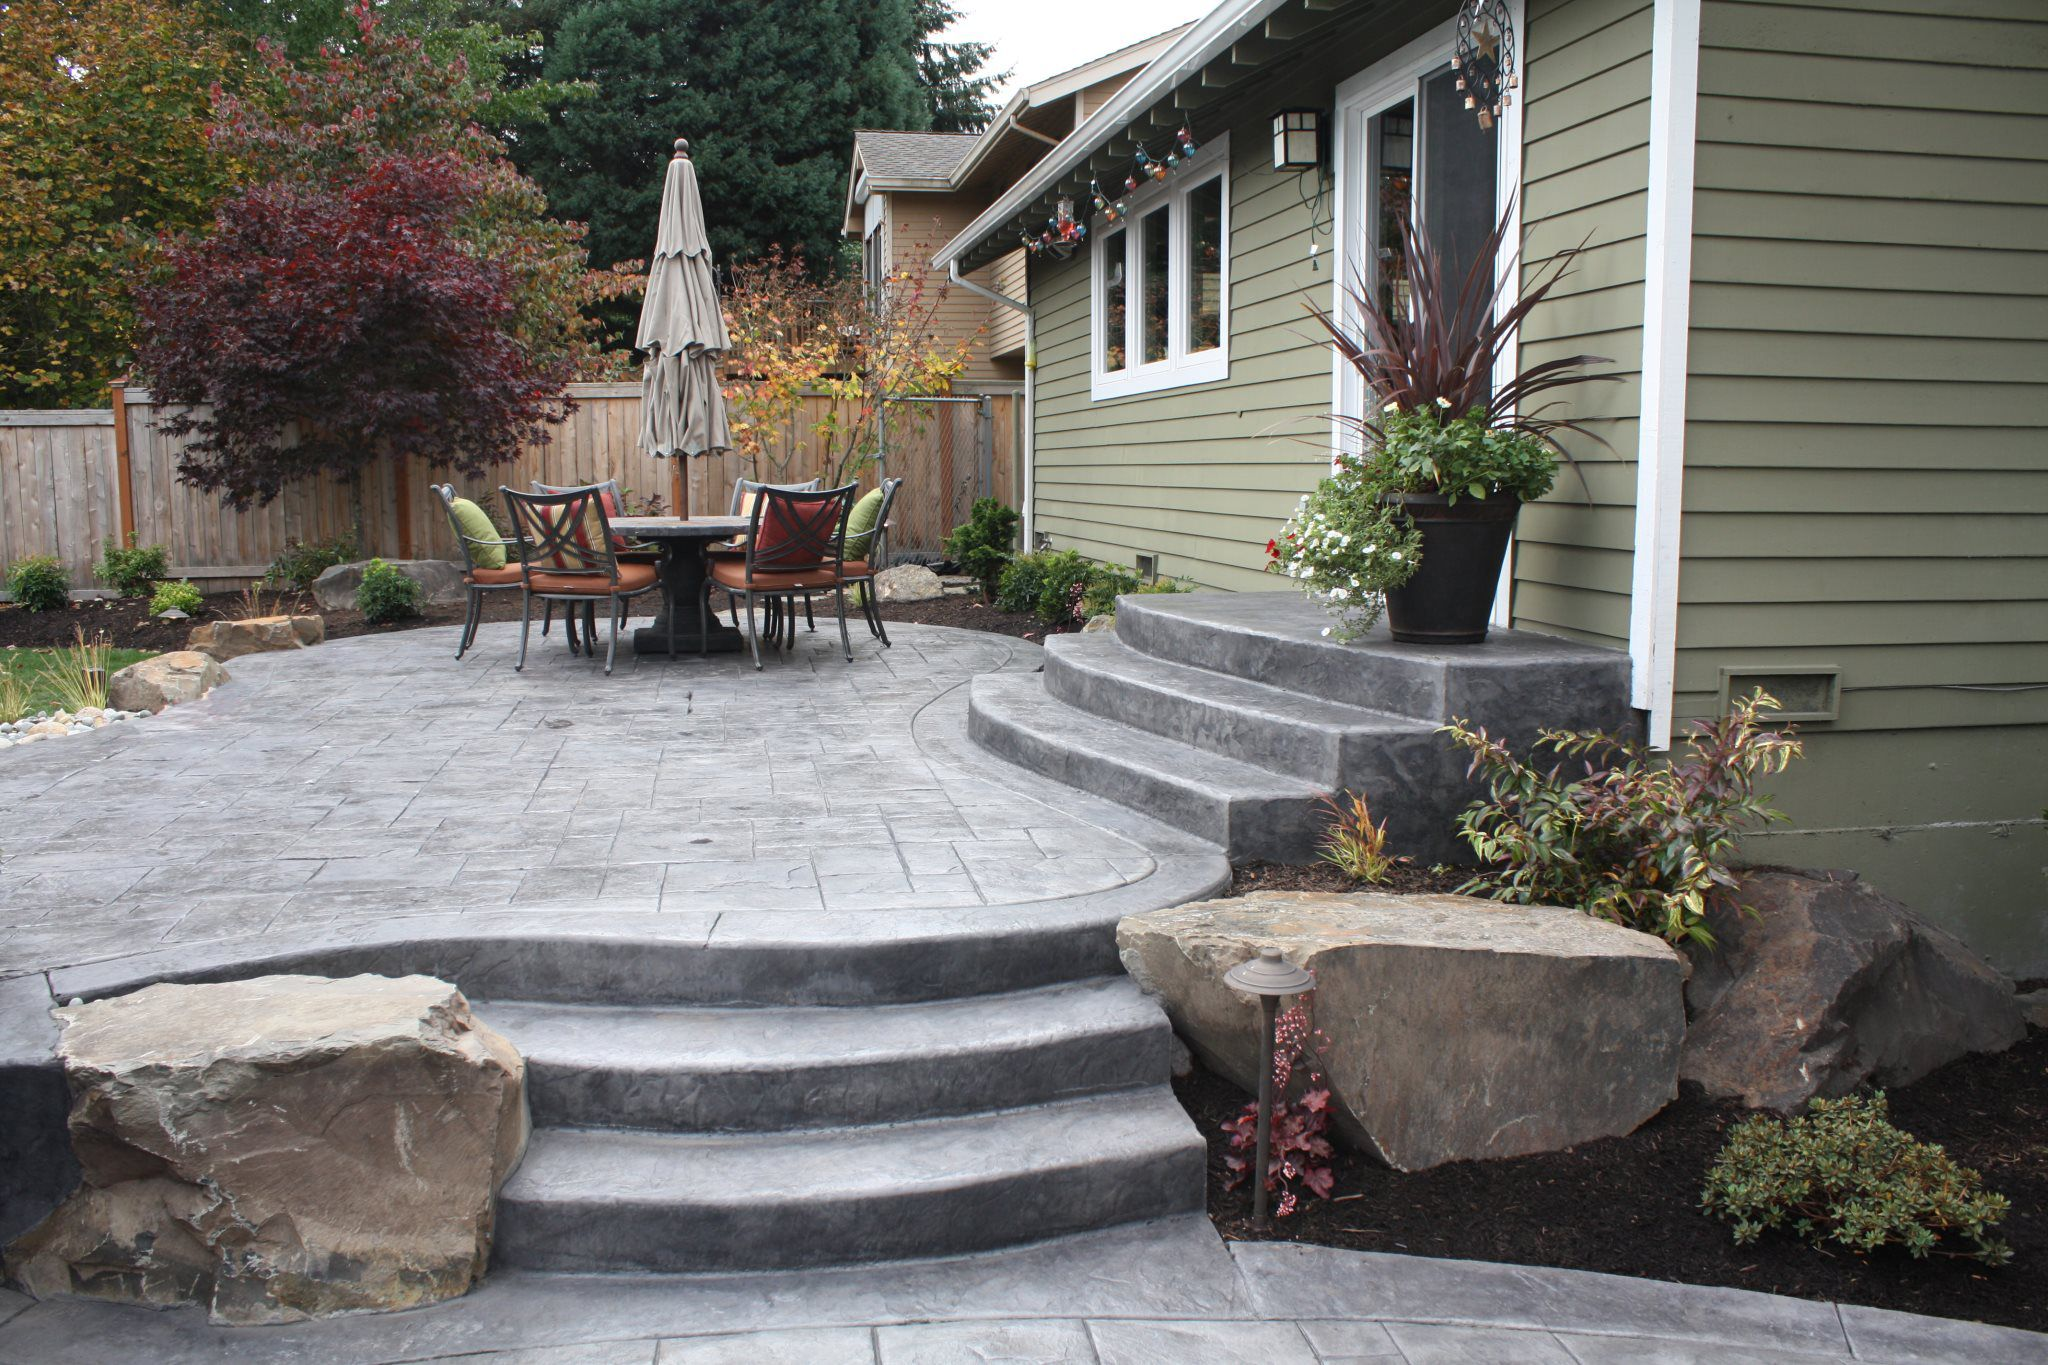 backyard concrete patio | Issaquah, WA Stamped concrete patio ...